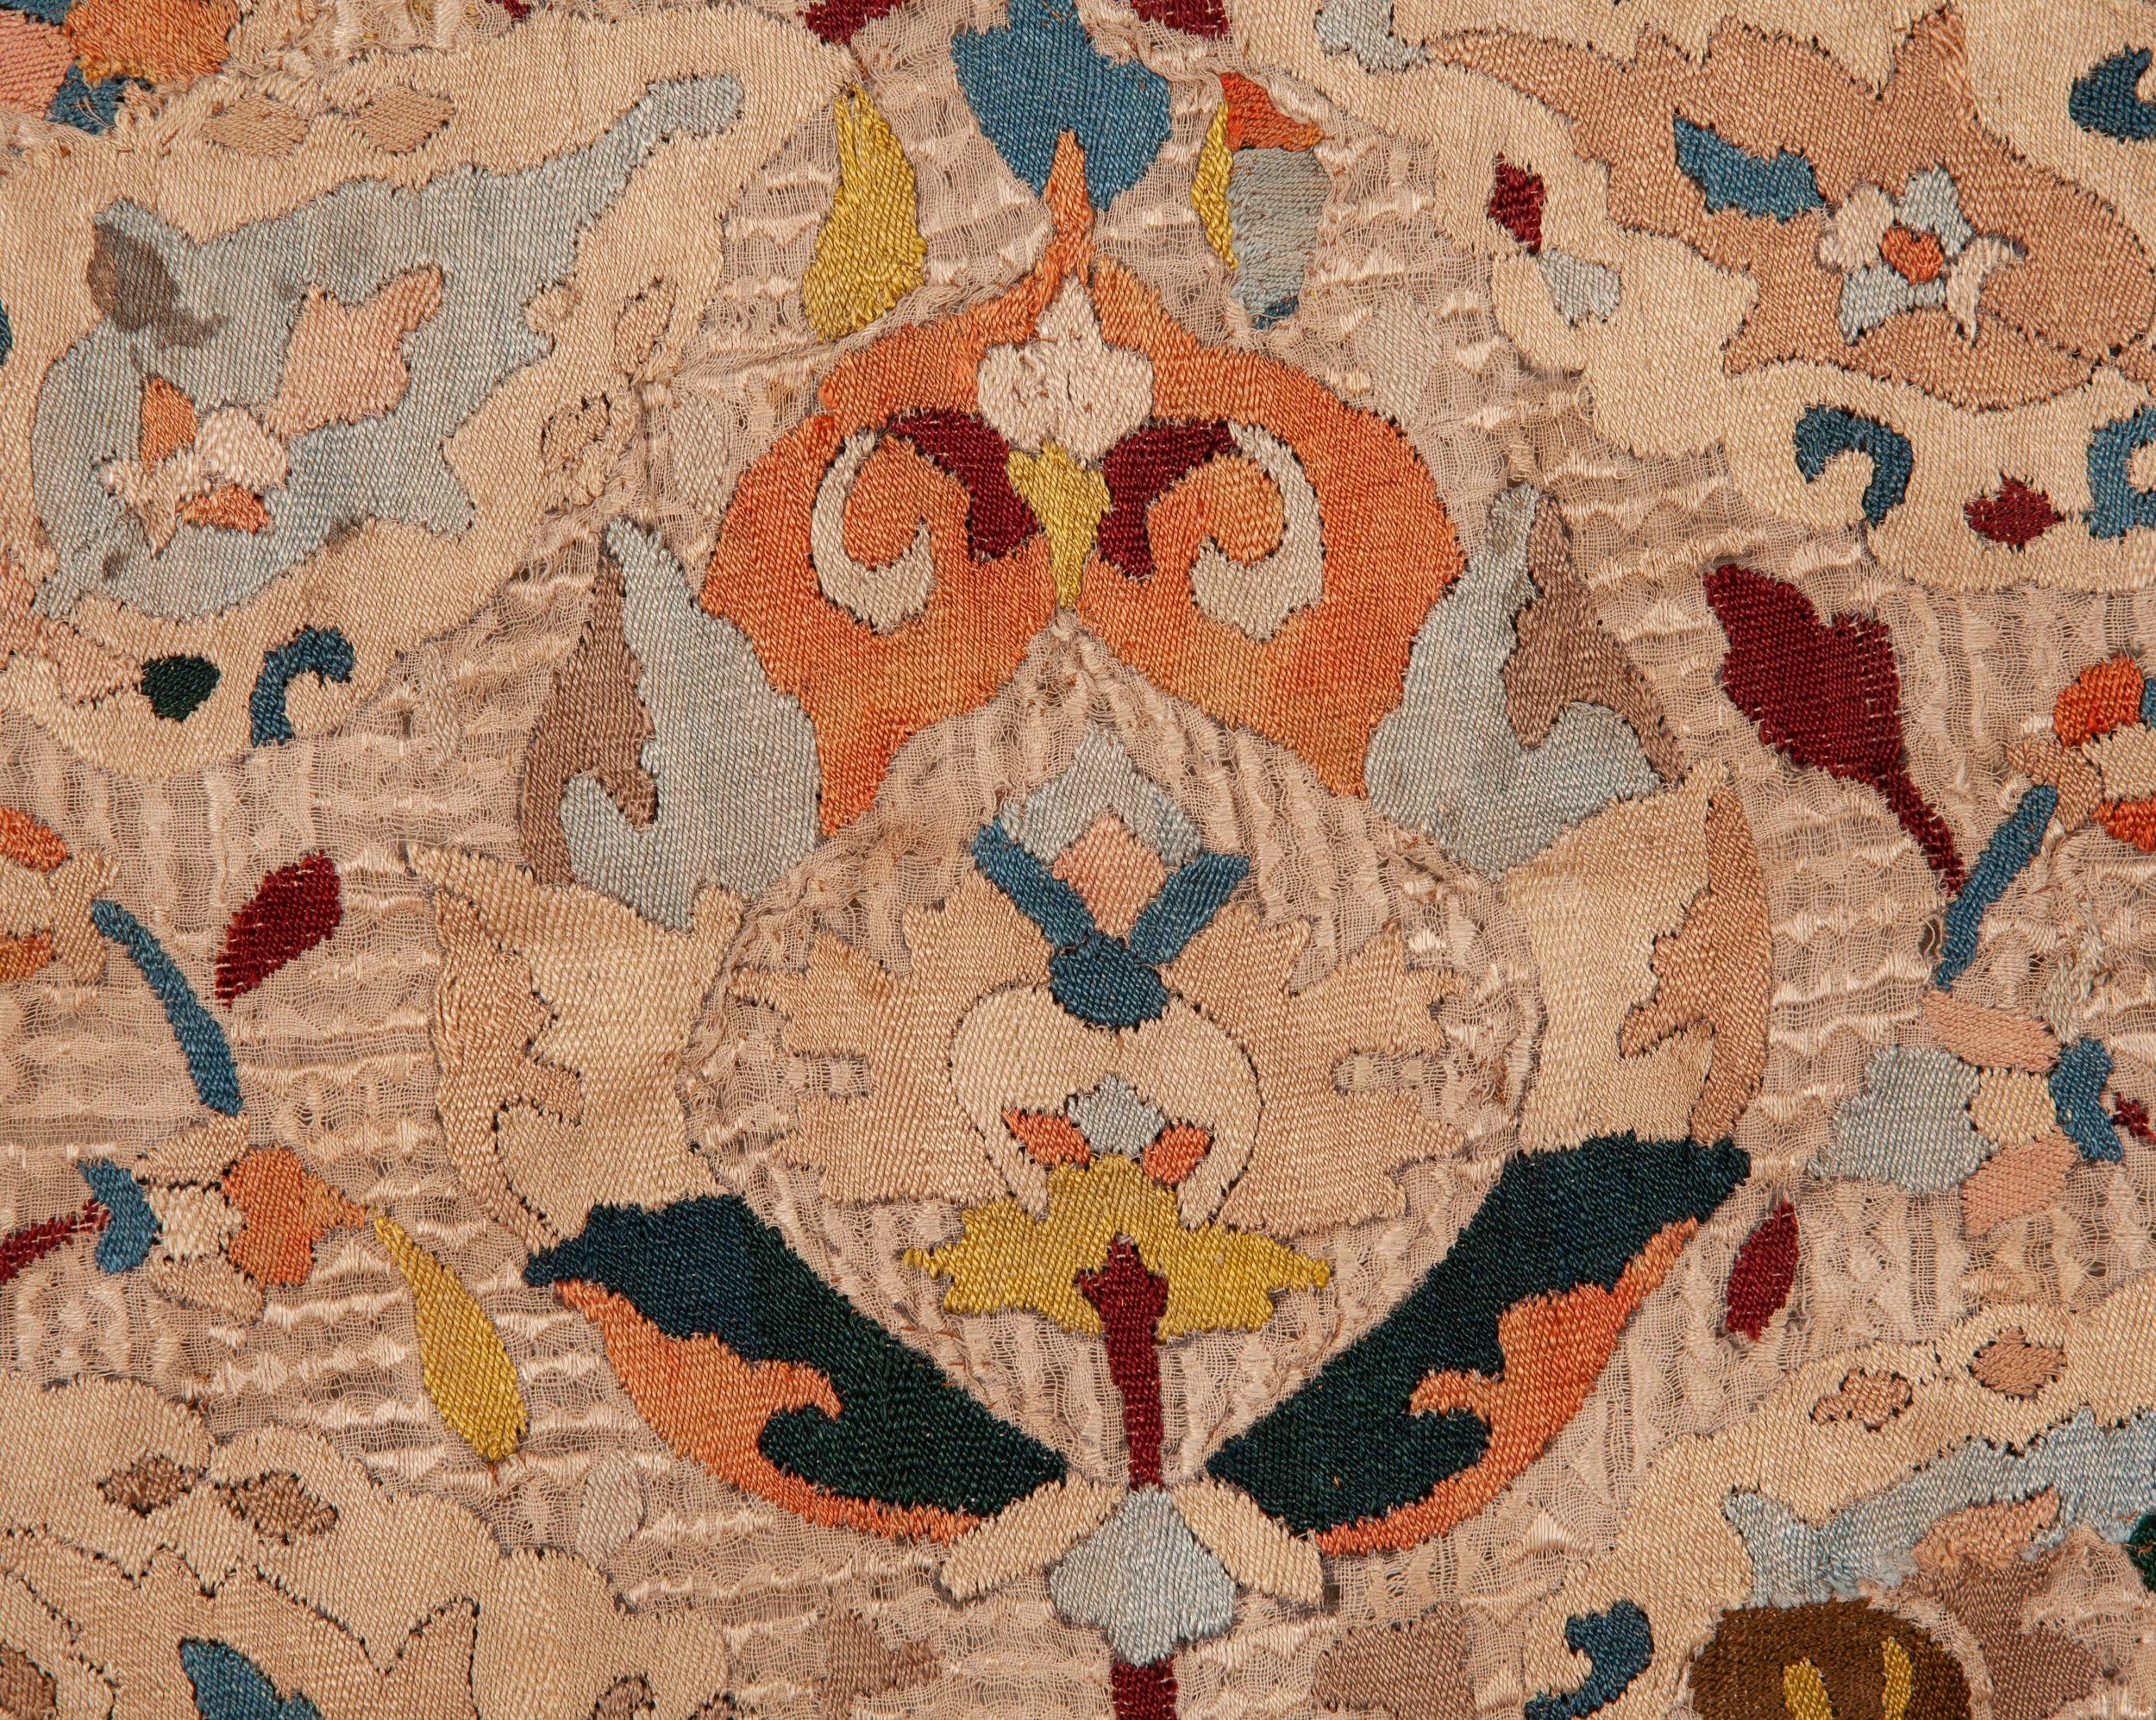 Caucasian Embroidery Fragment